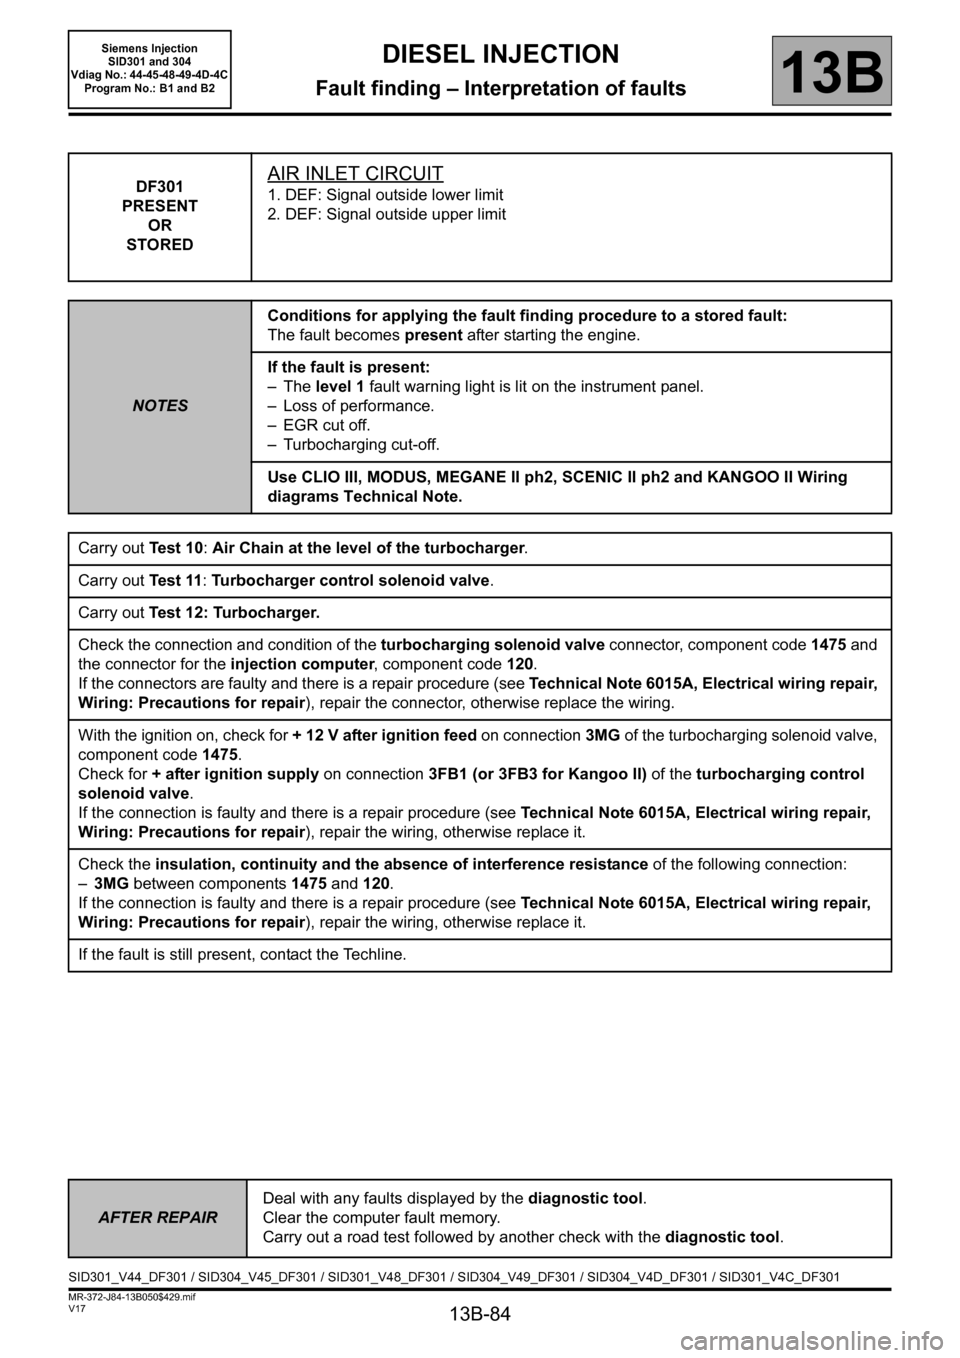 RENAULT SCENIC 2011 J95 / 3.G Engine And Peripherals Siemens Injection Workshop Manual, Page 84